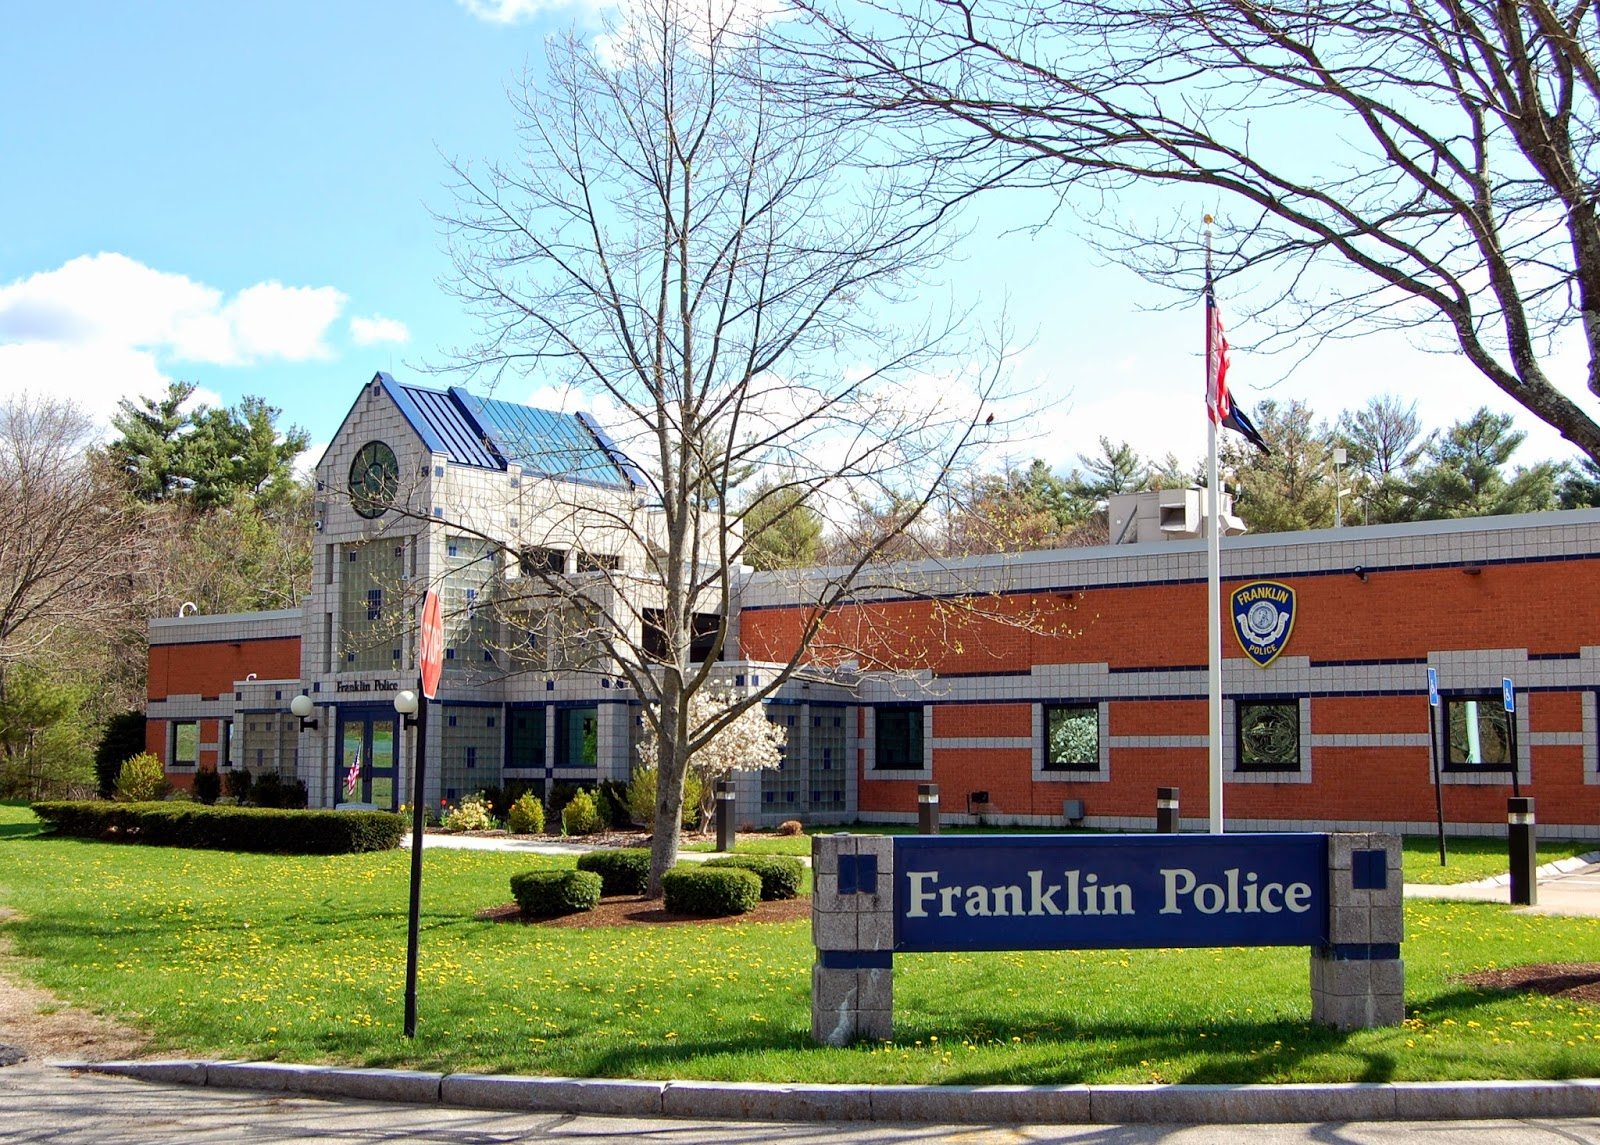 Franklin Police station - Panther Way